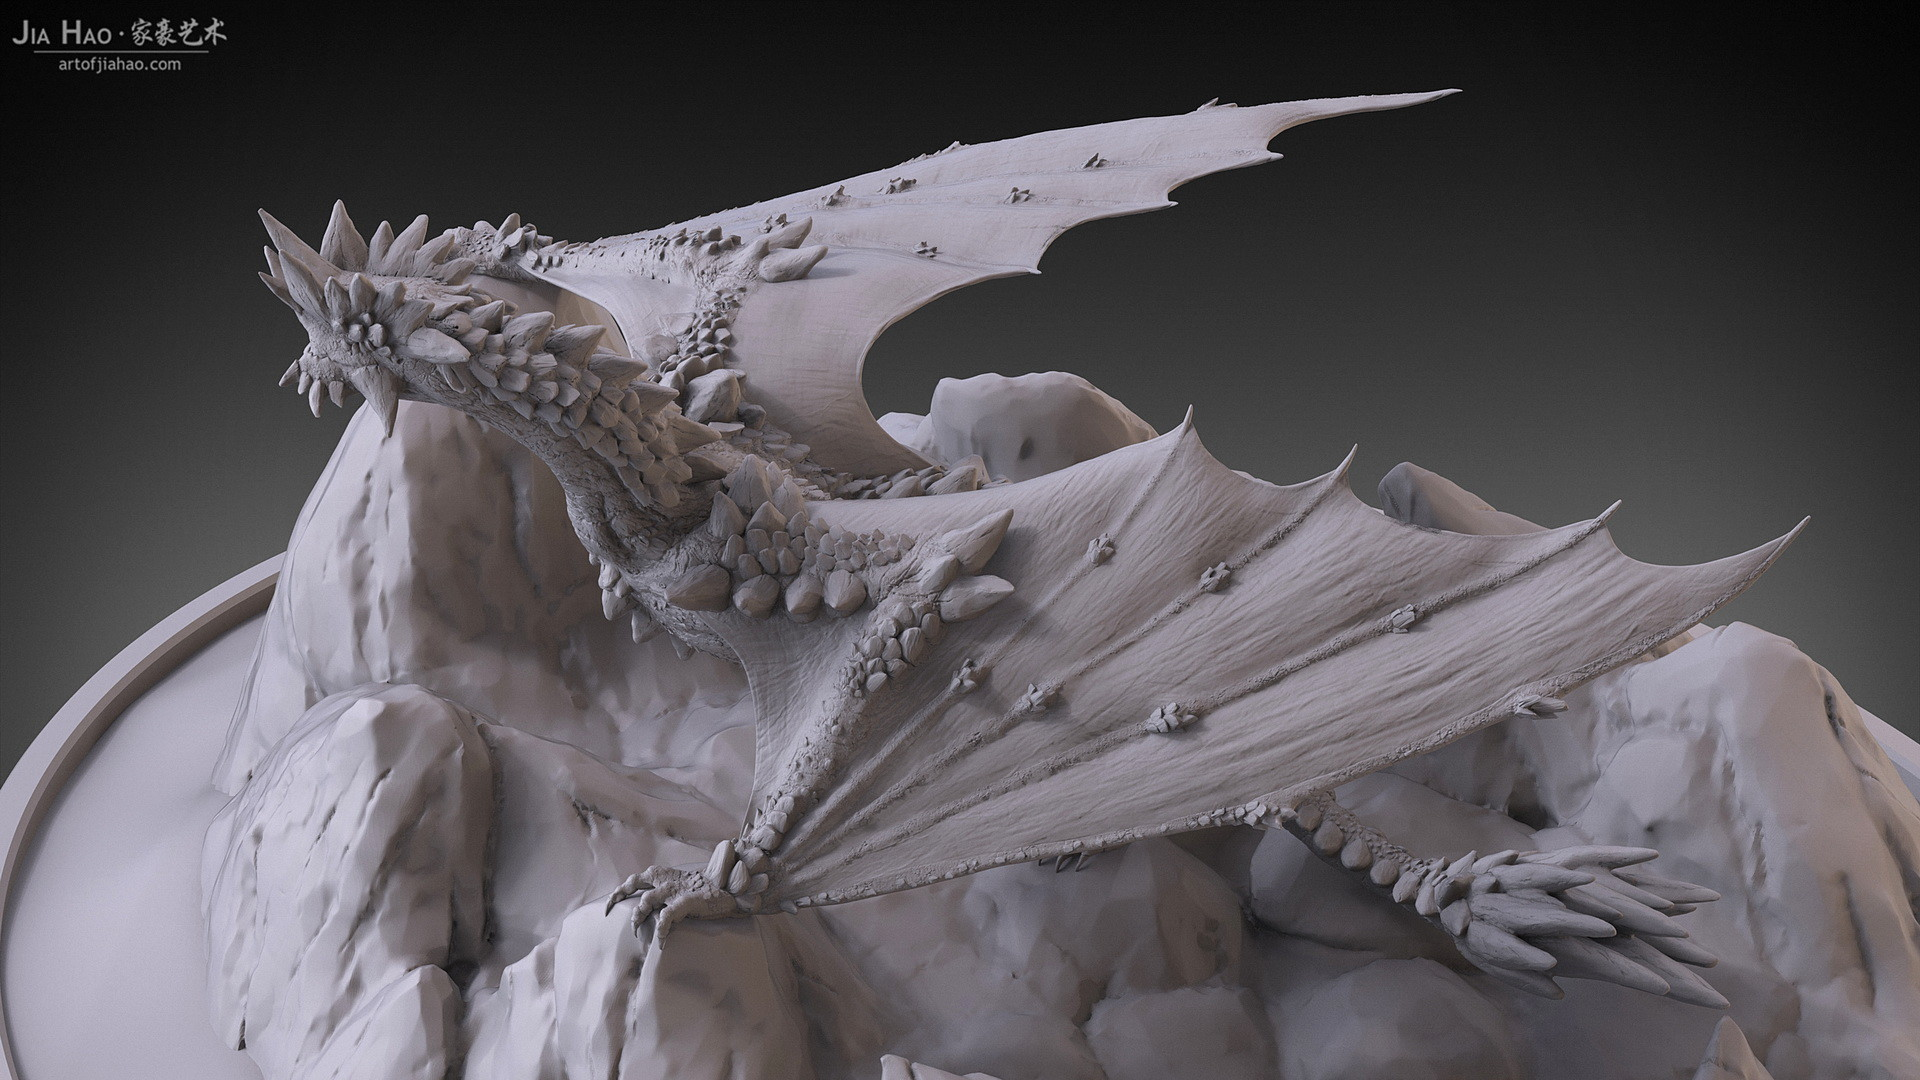 Jia hao 2017 rockdragon digitalsculpting 12